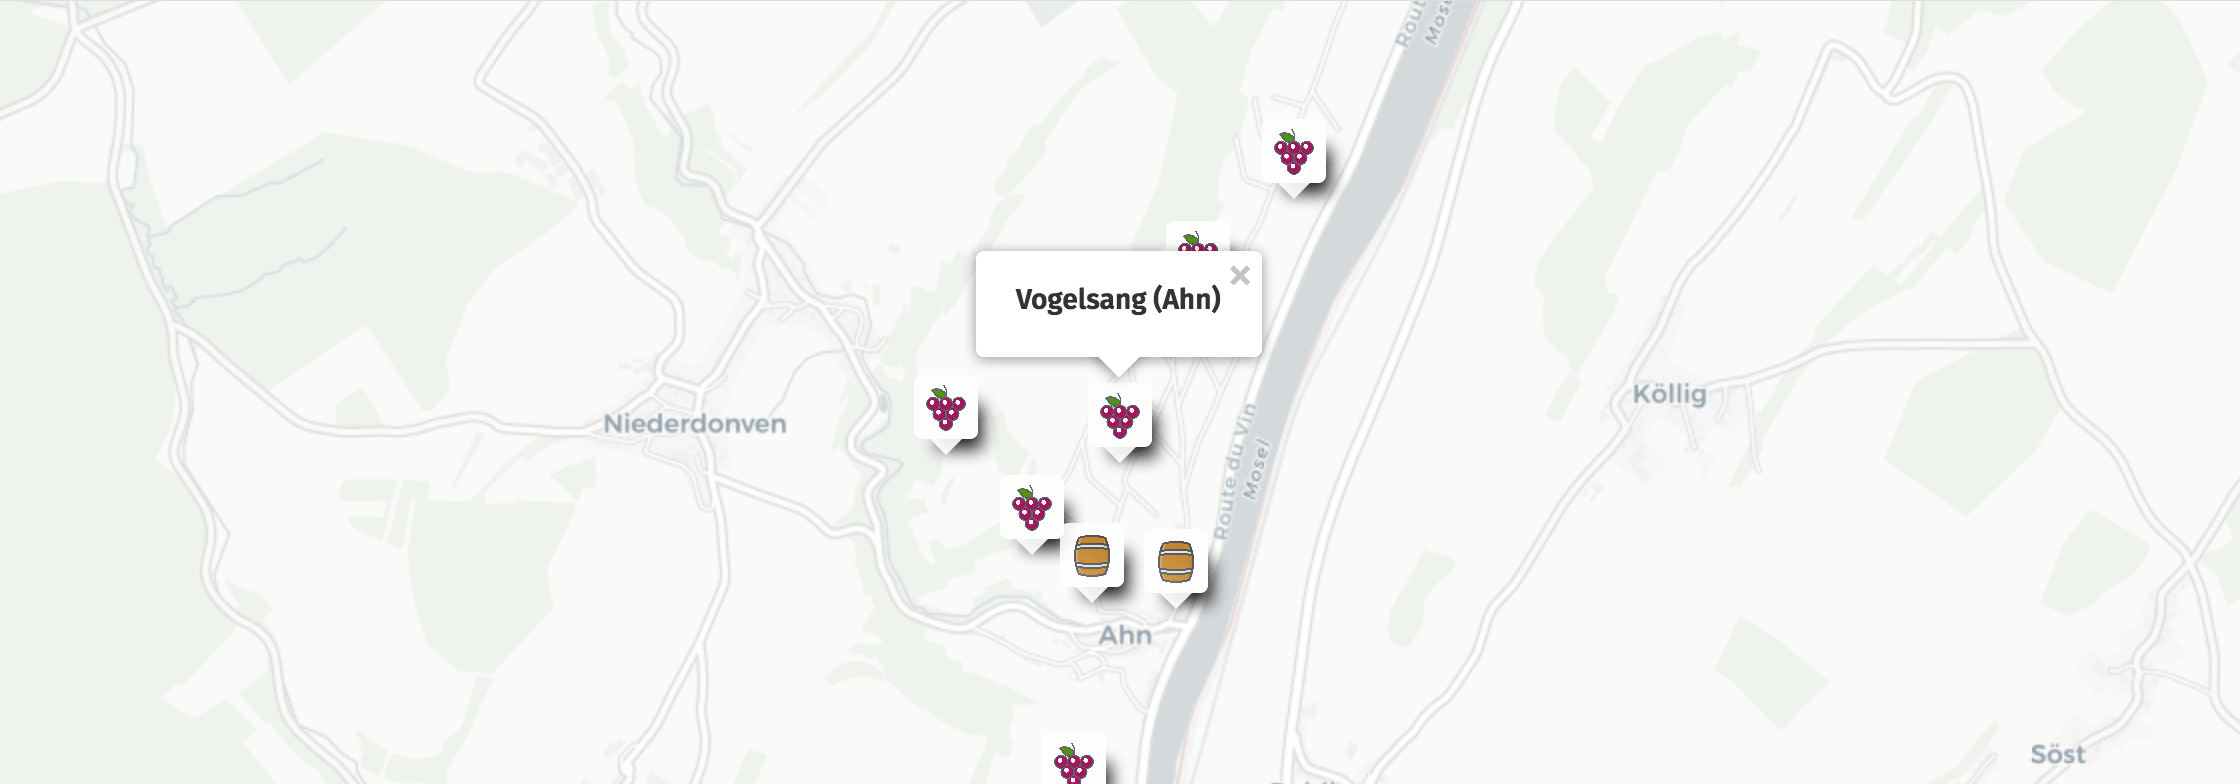 Geolocation of Vogelsang wines in Ahn